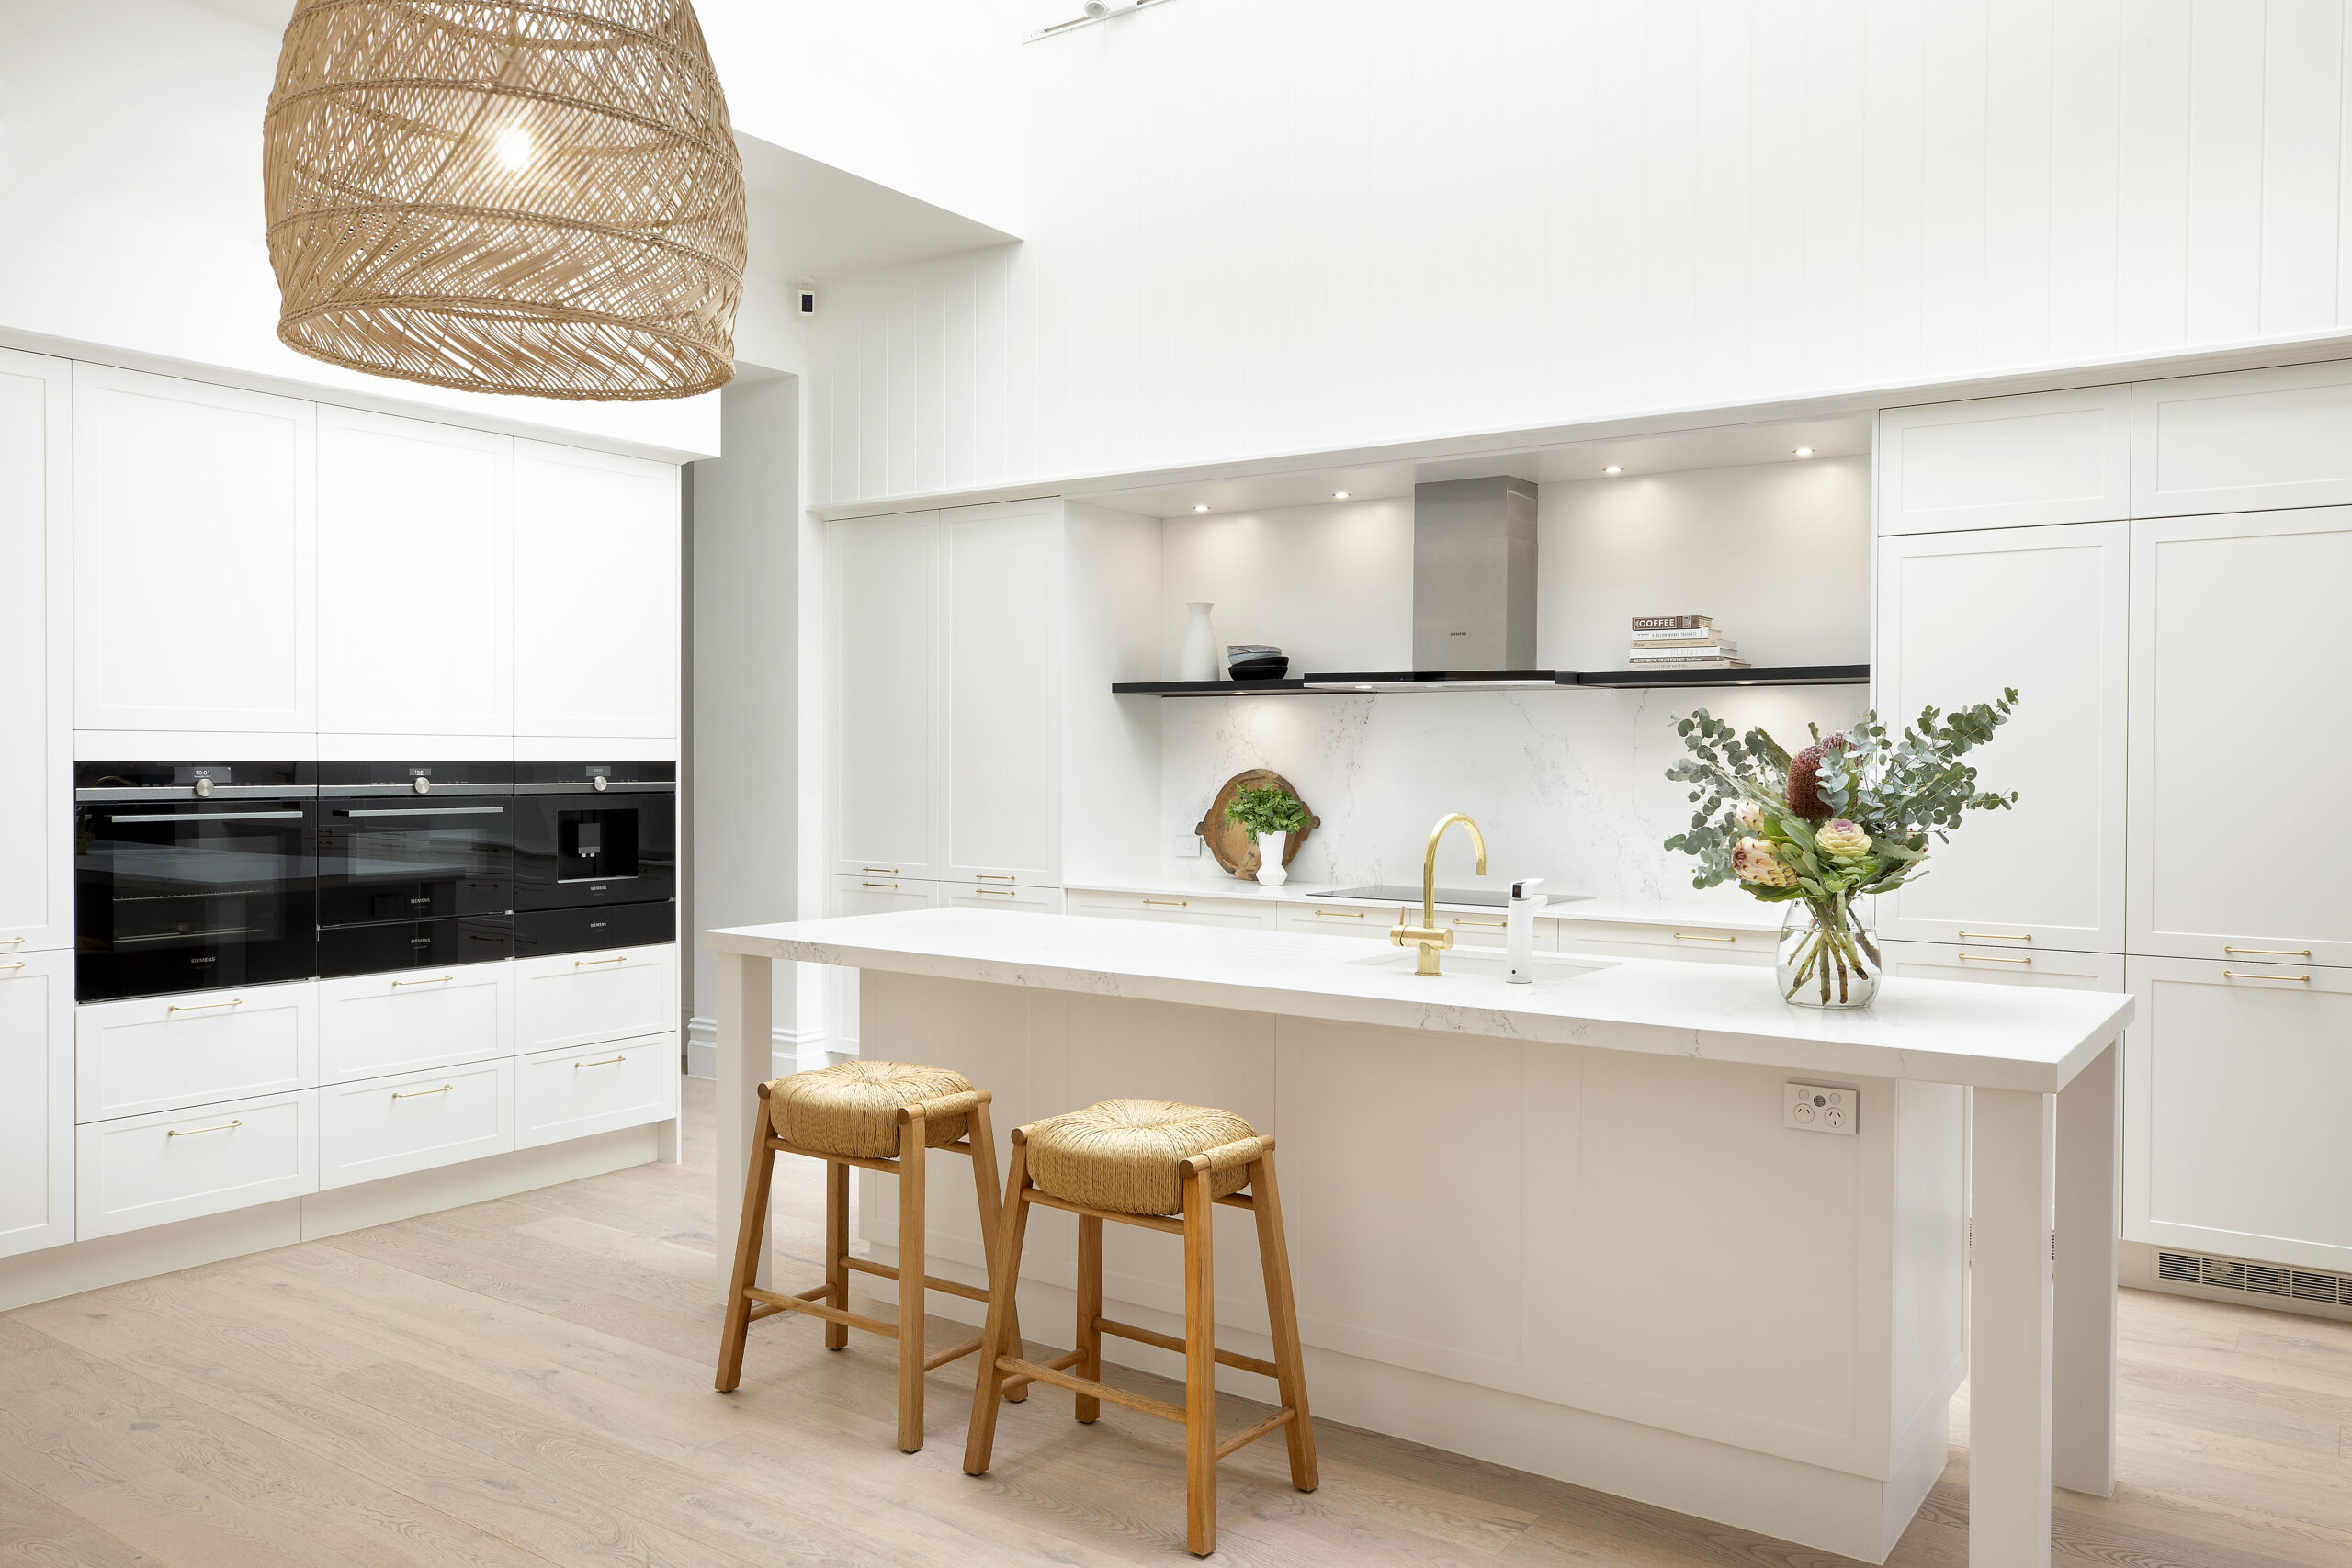 White Shaker-Style Cabinetry